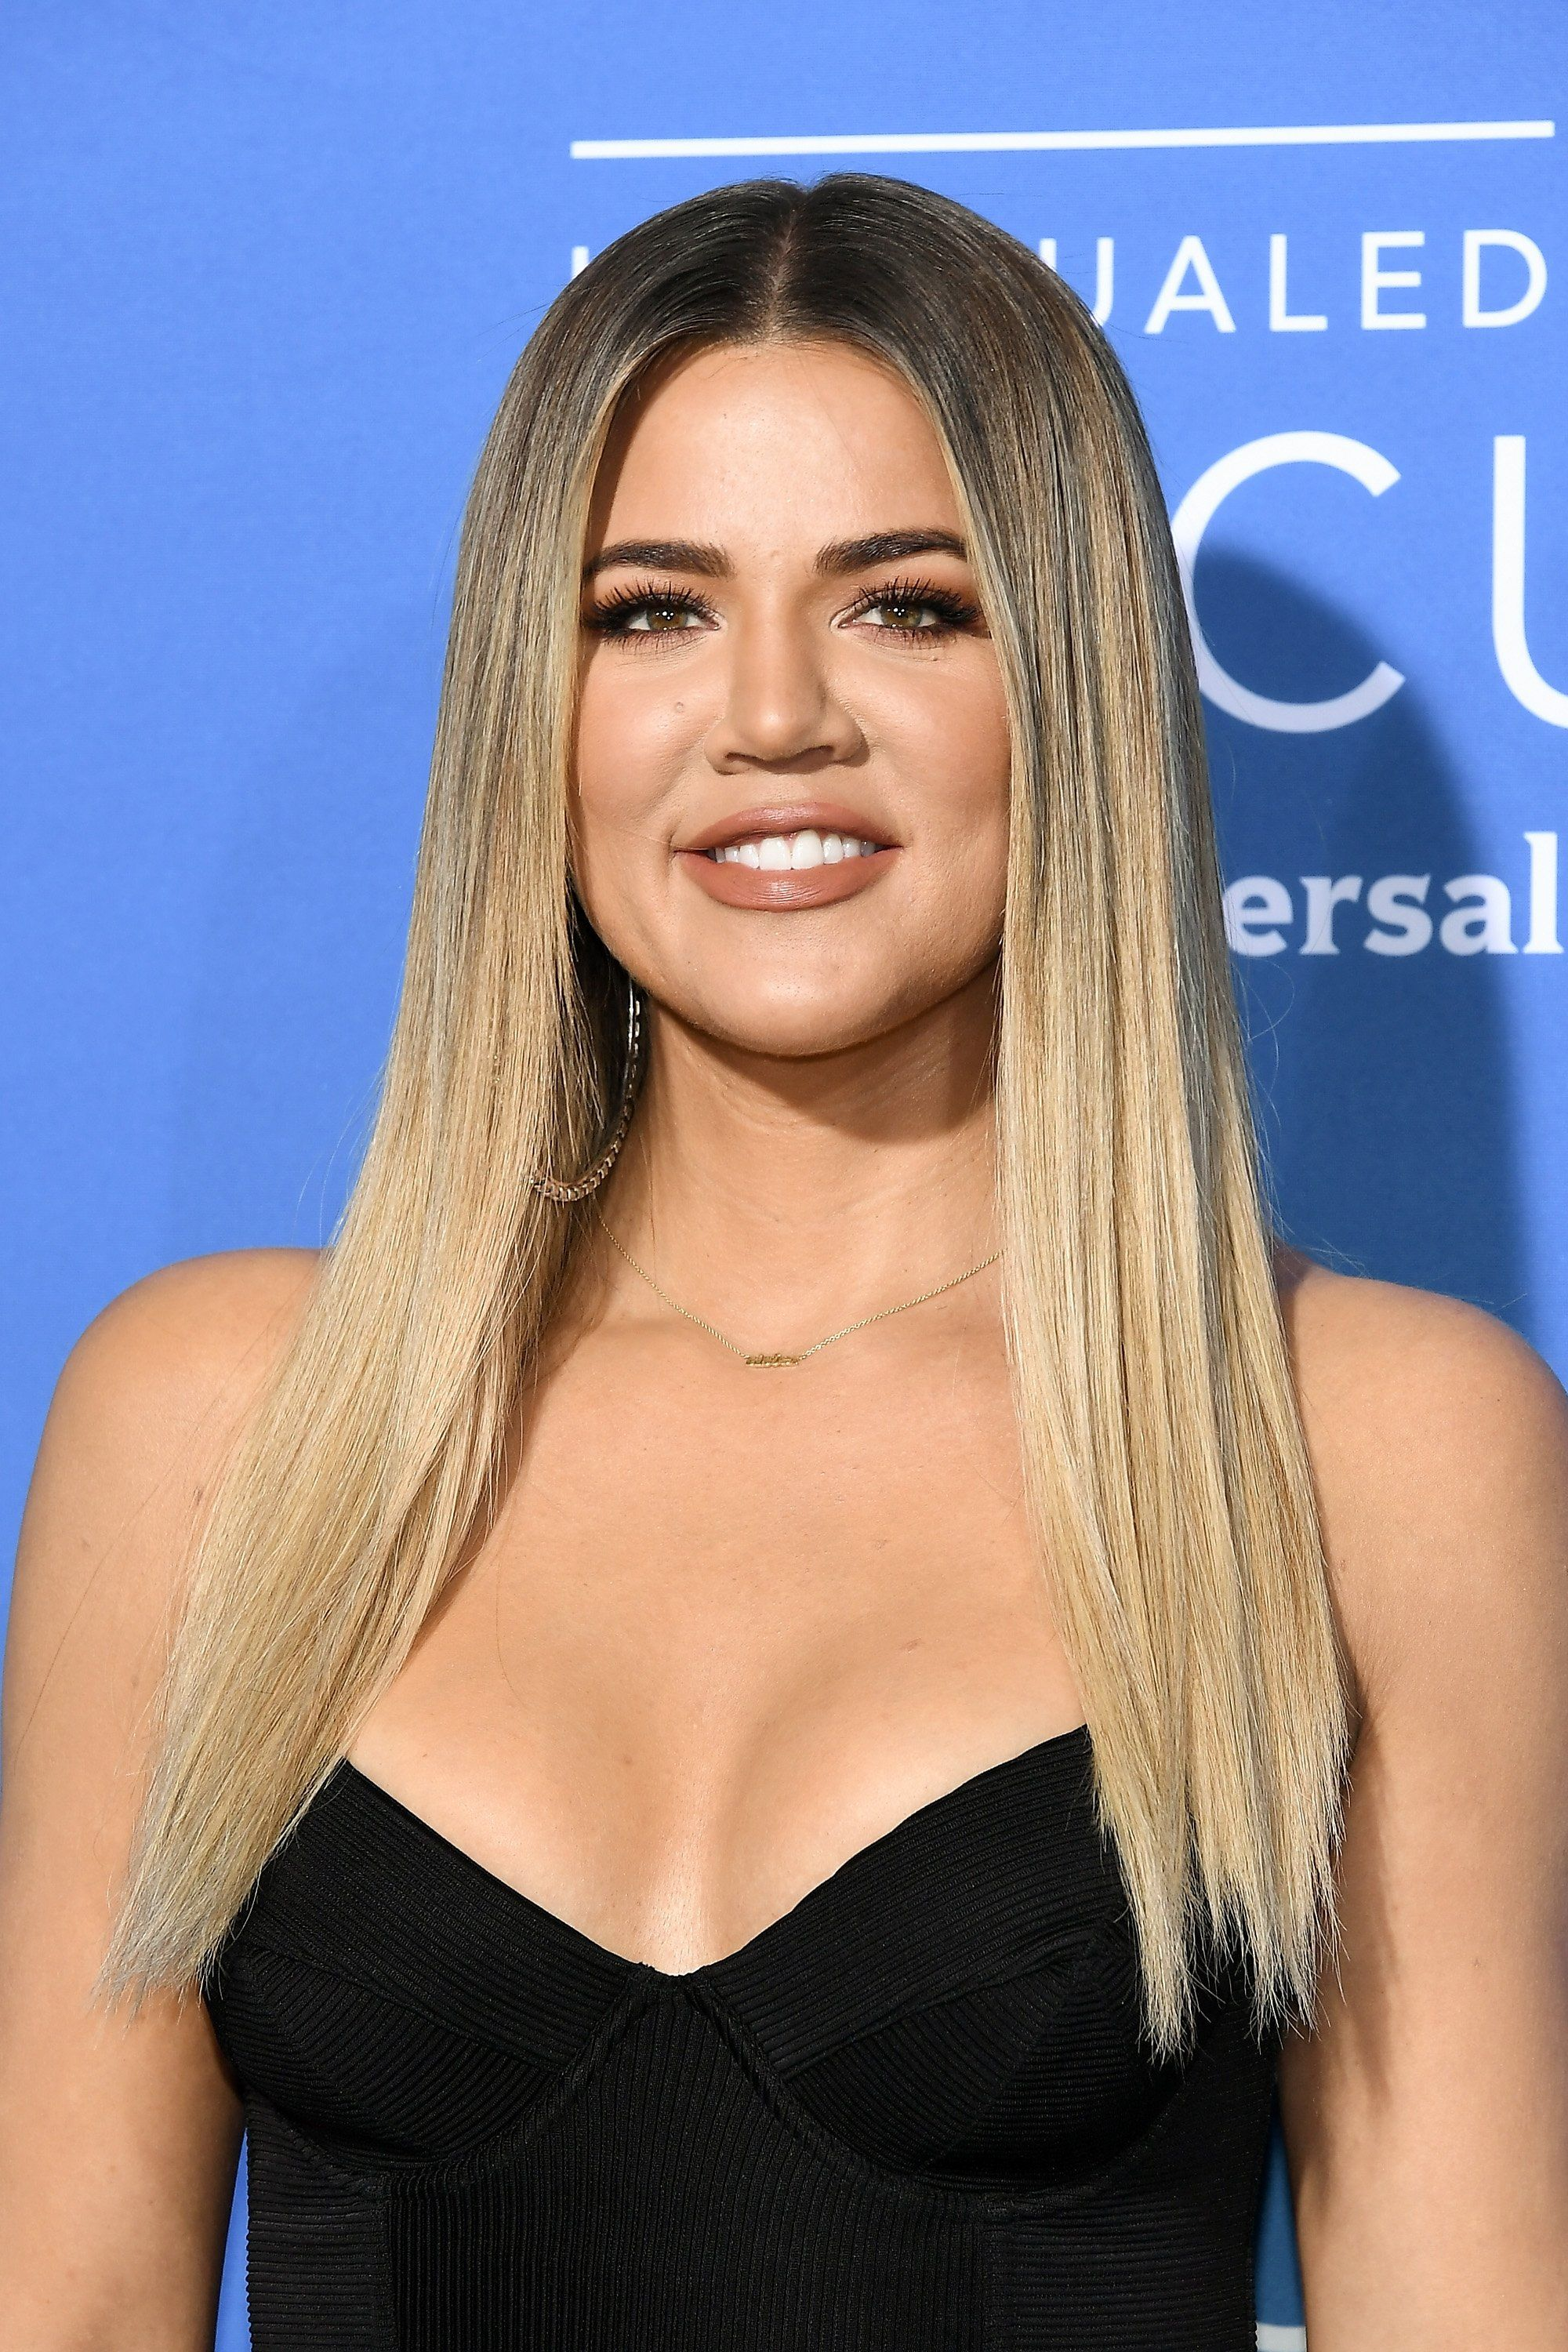 Khlo Kardashian Cant Get This Controversial Hair Treatment While